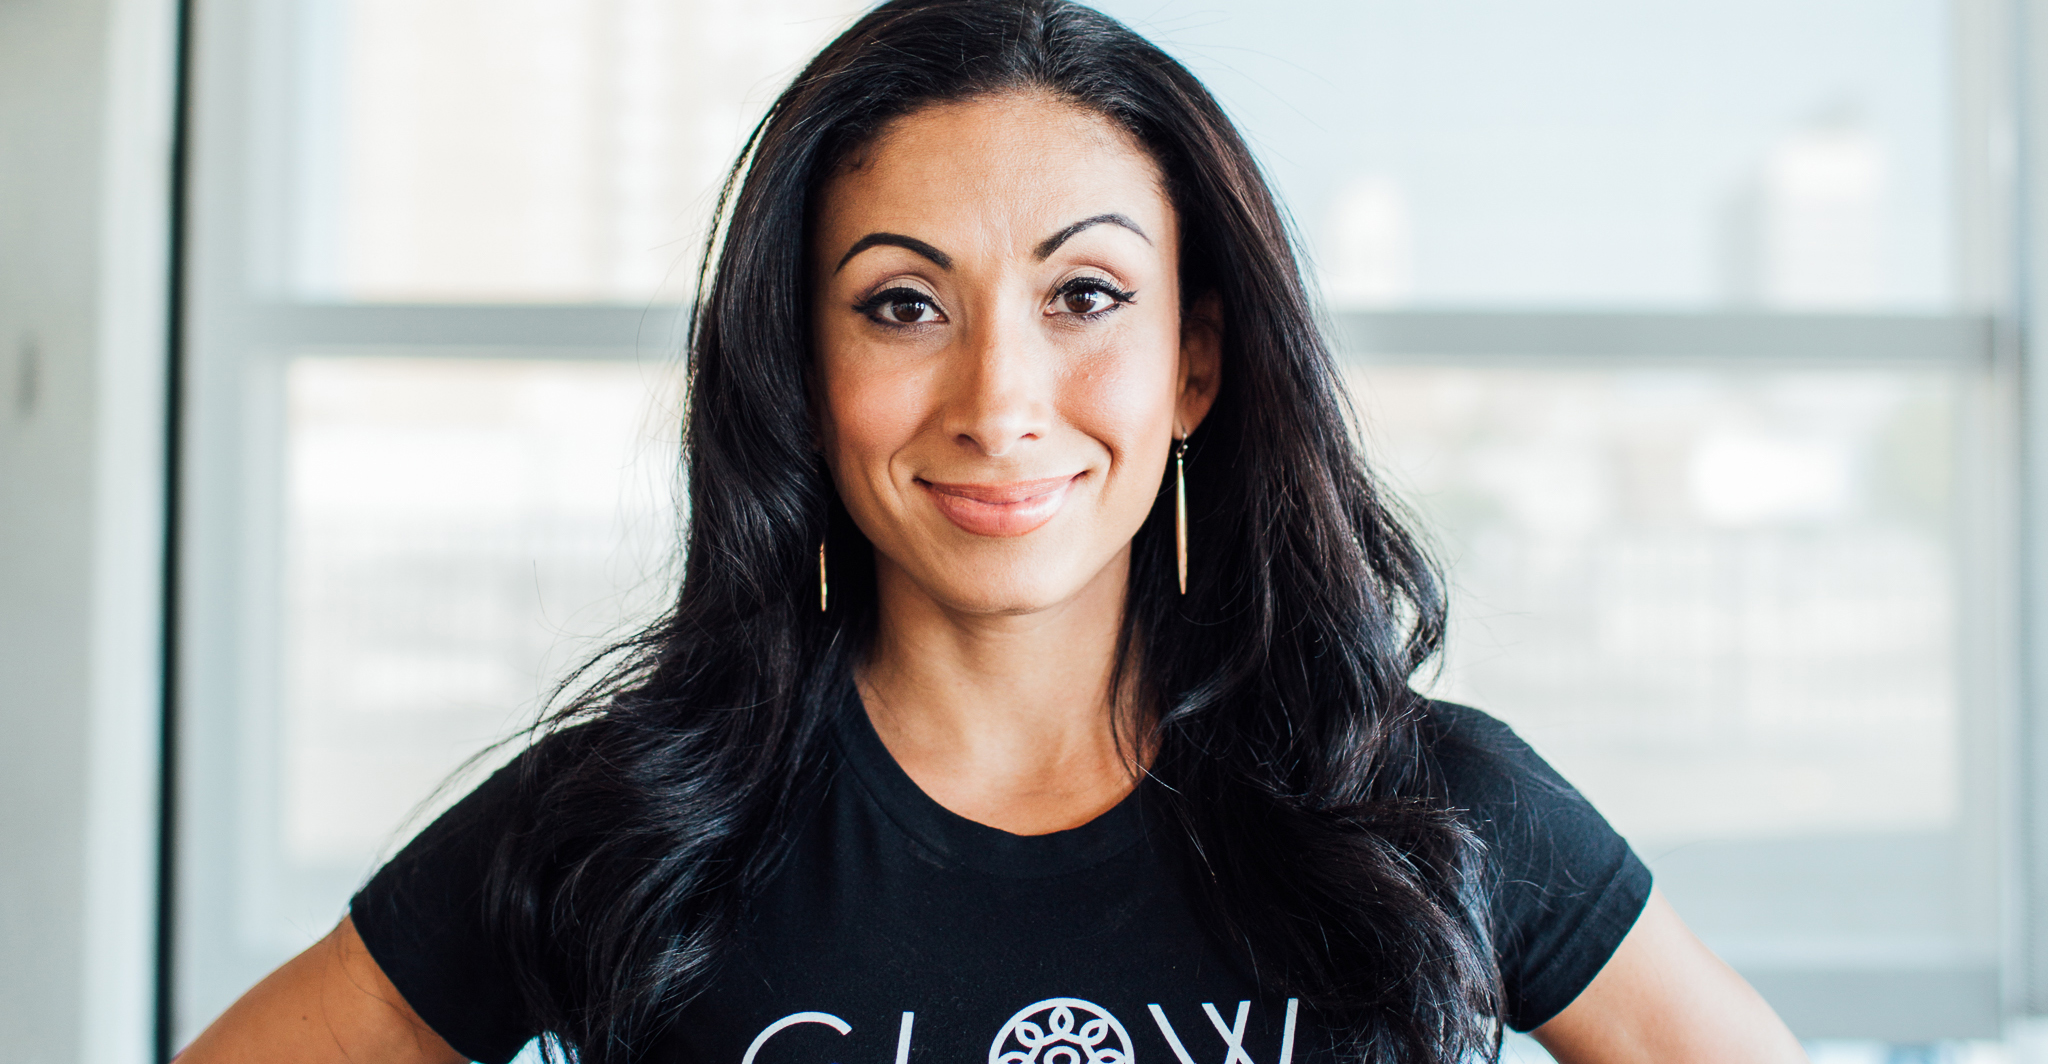 GLOW beauty app founder finds importance in staying local